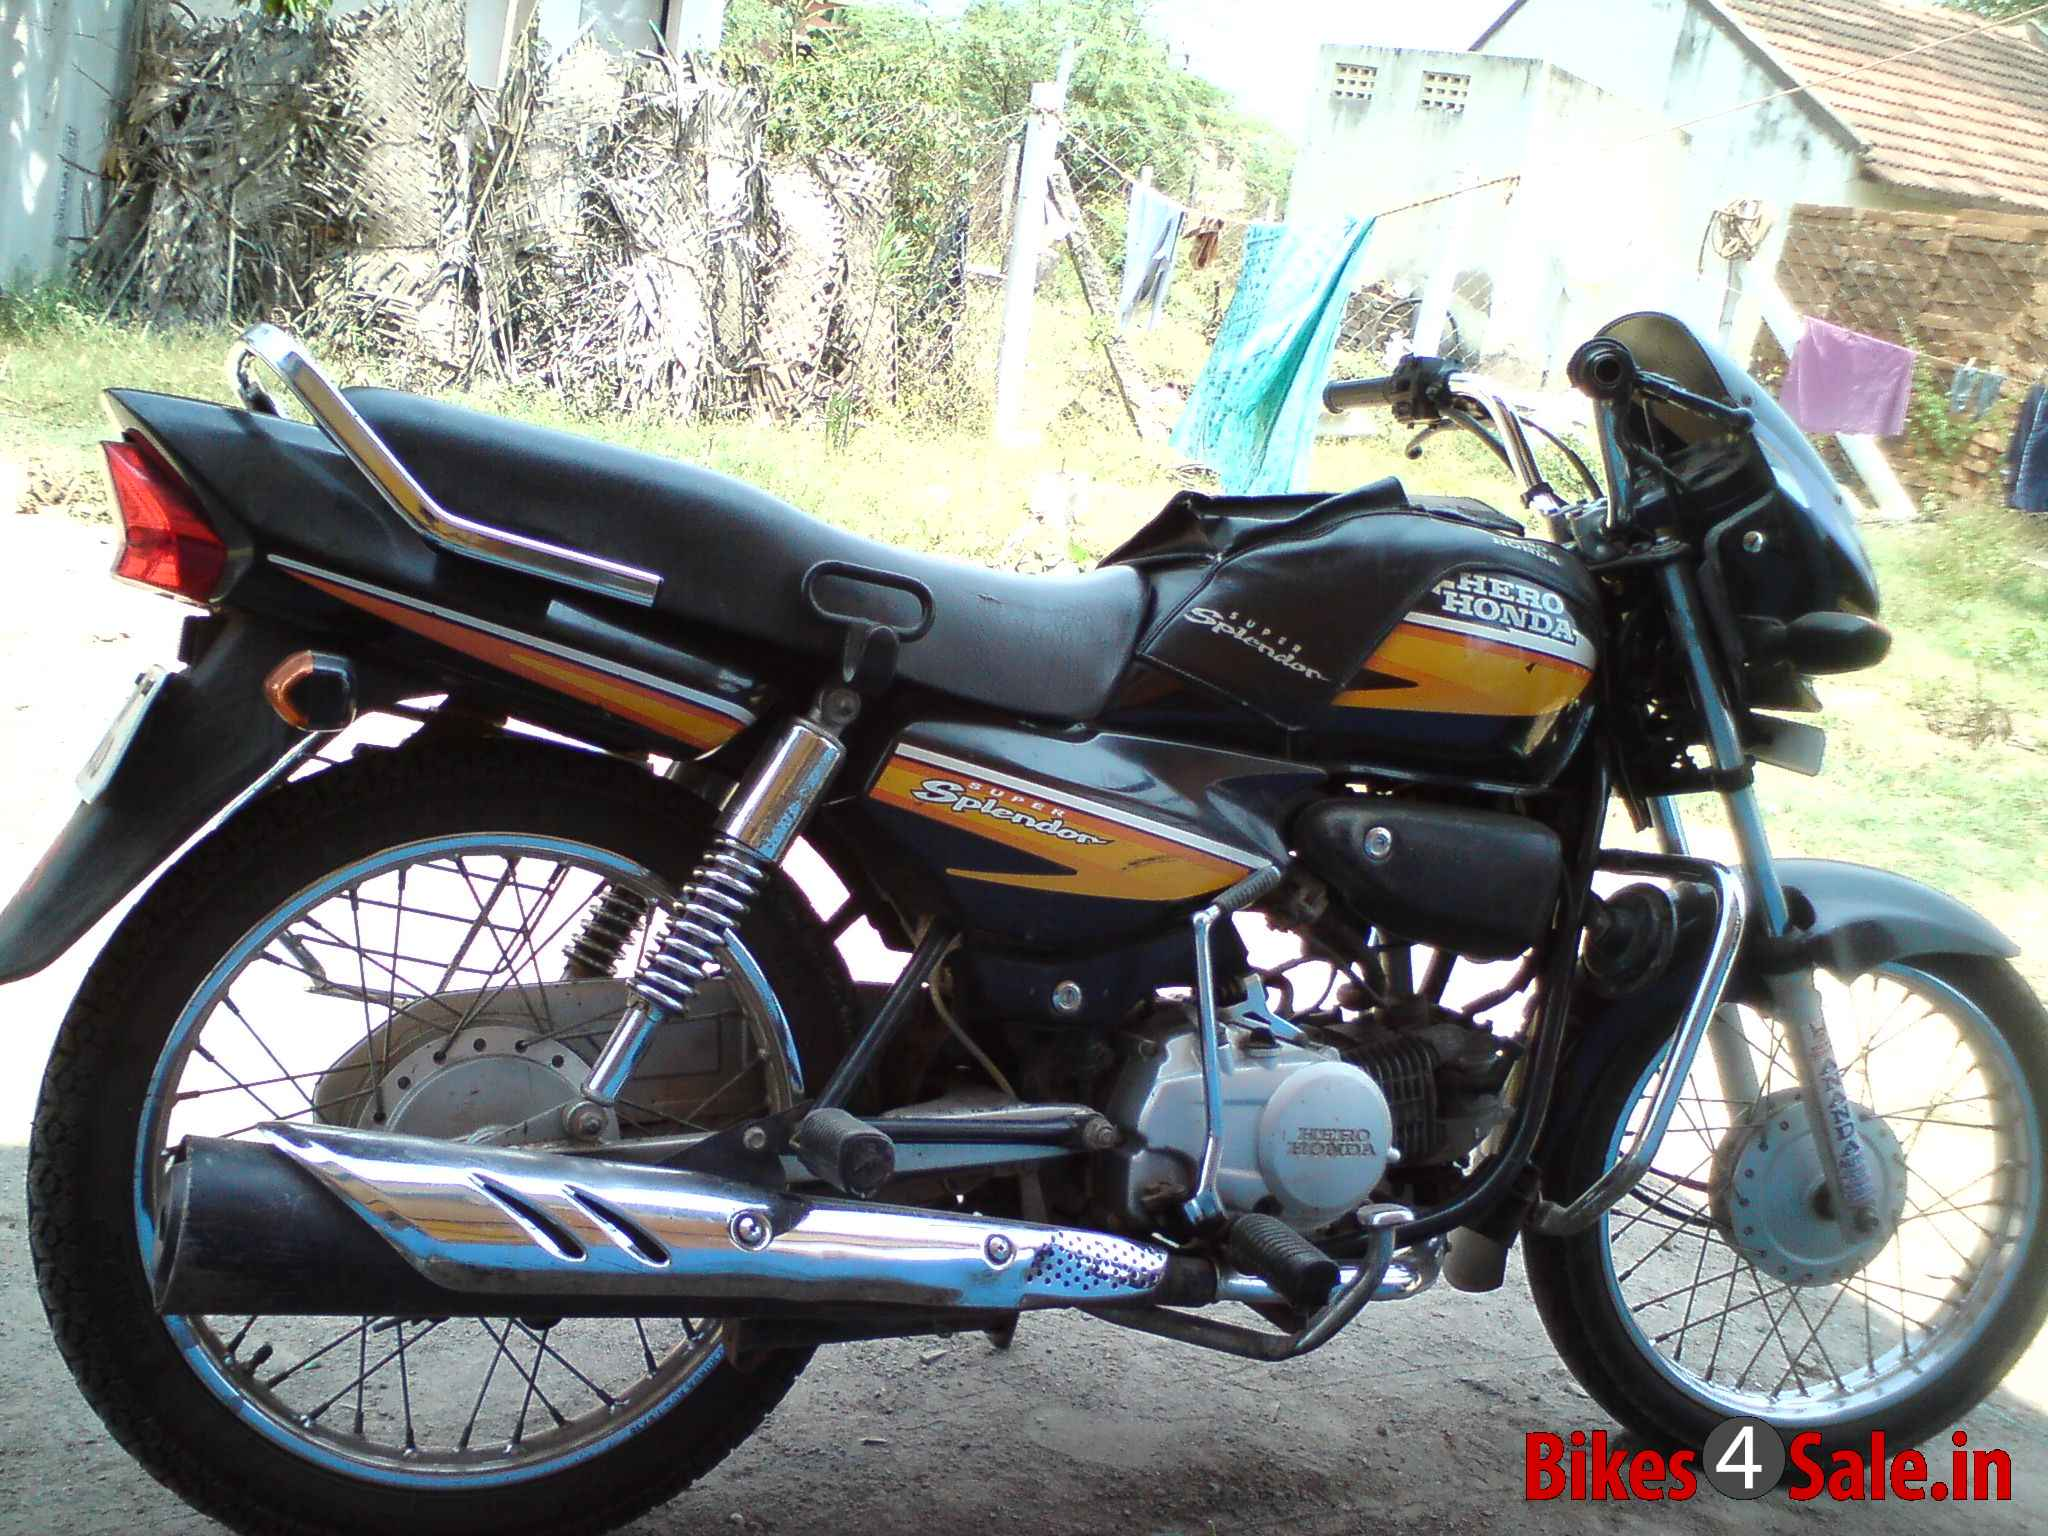 hero honda splendor bike wiring diagram 2 port zone valve motorcycles pics specs and list of models